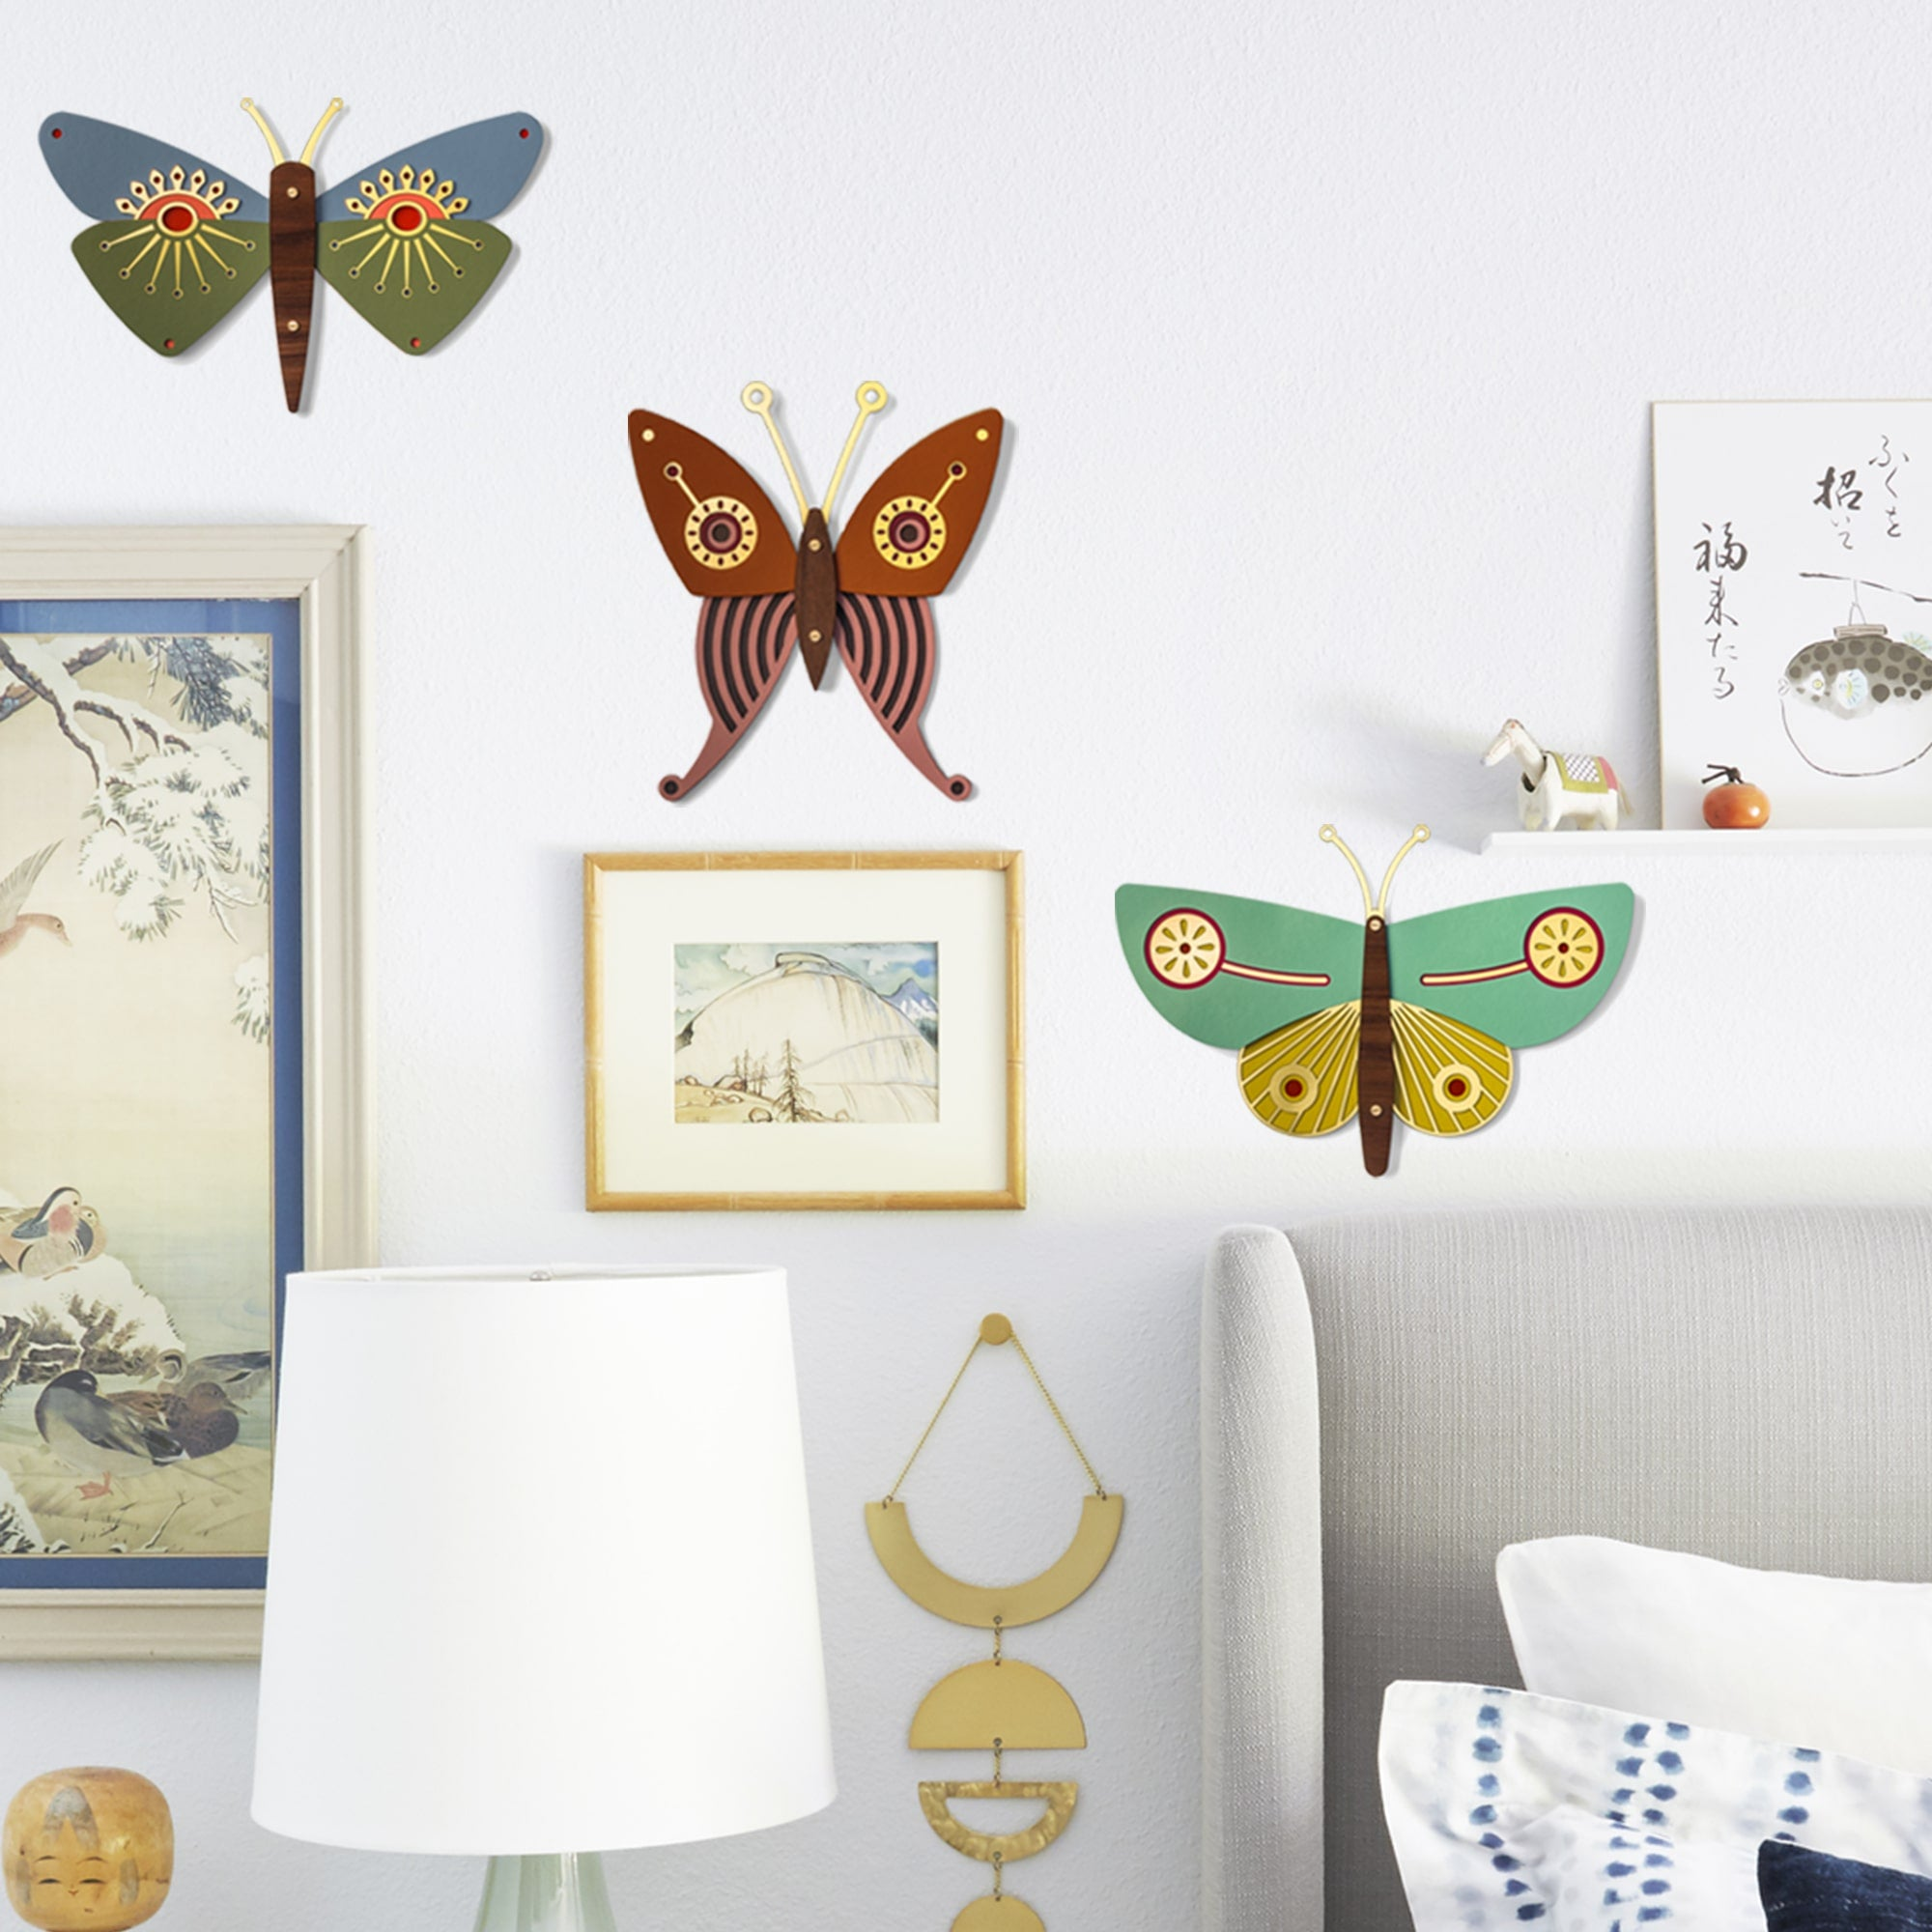 Wooden Butterfly Wall Decor in Japanese Bedroom